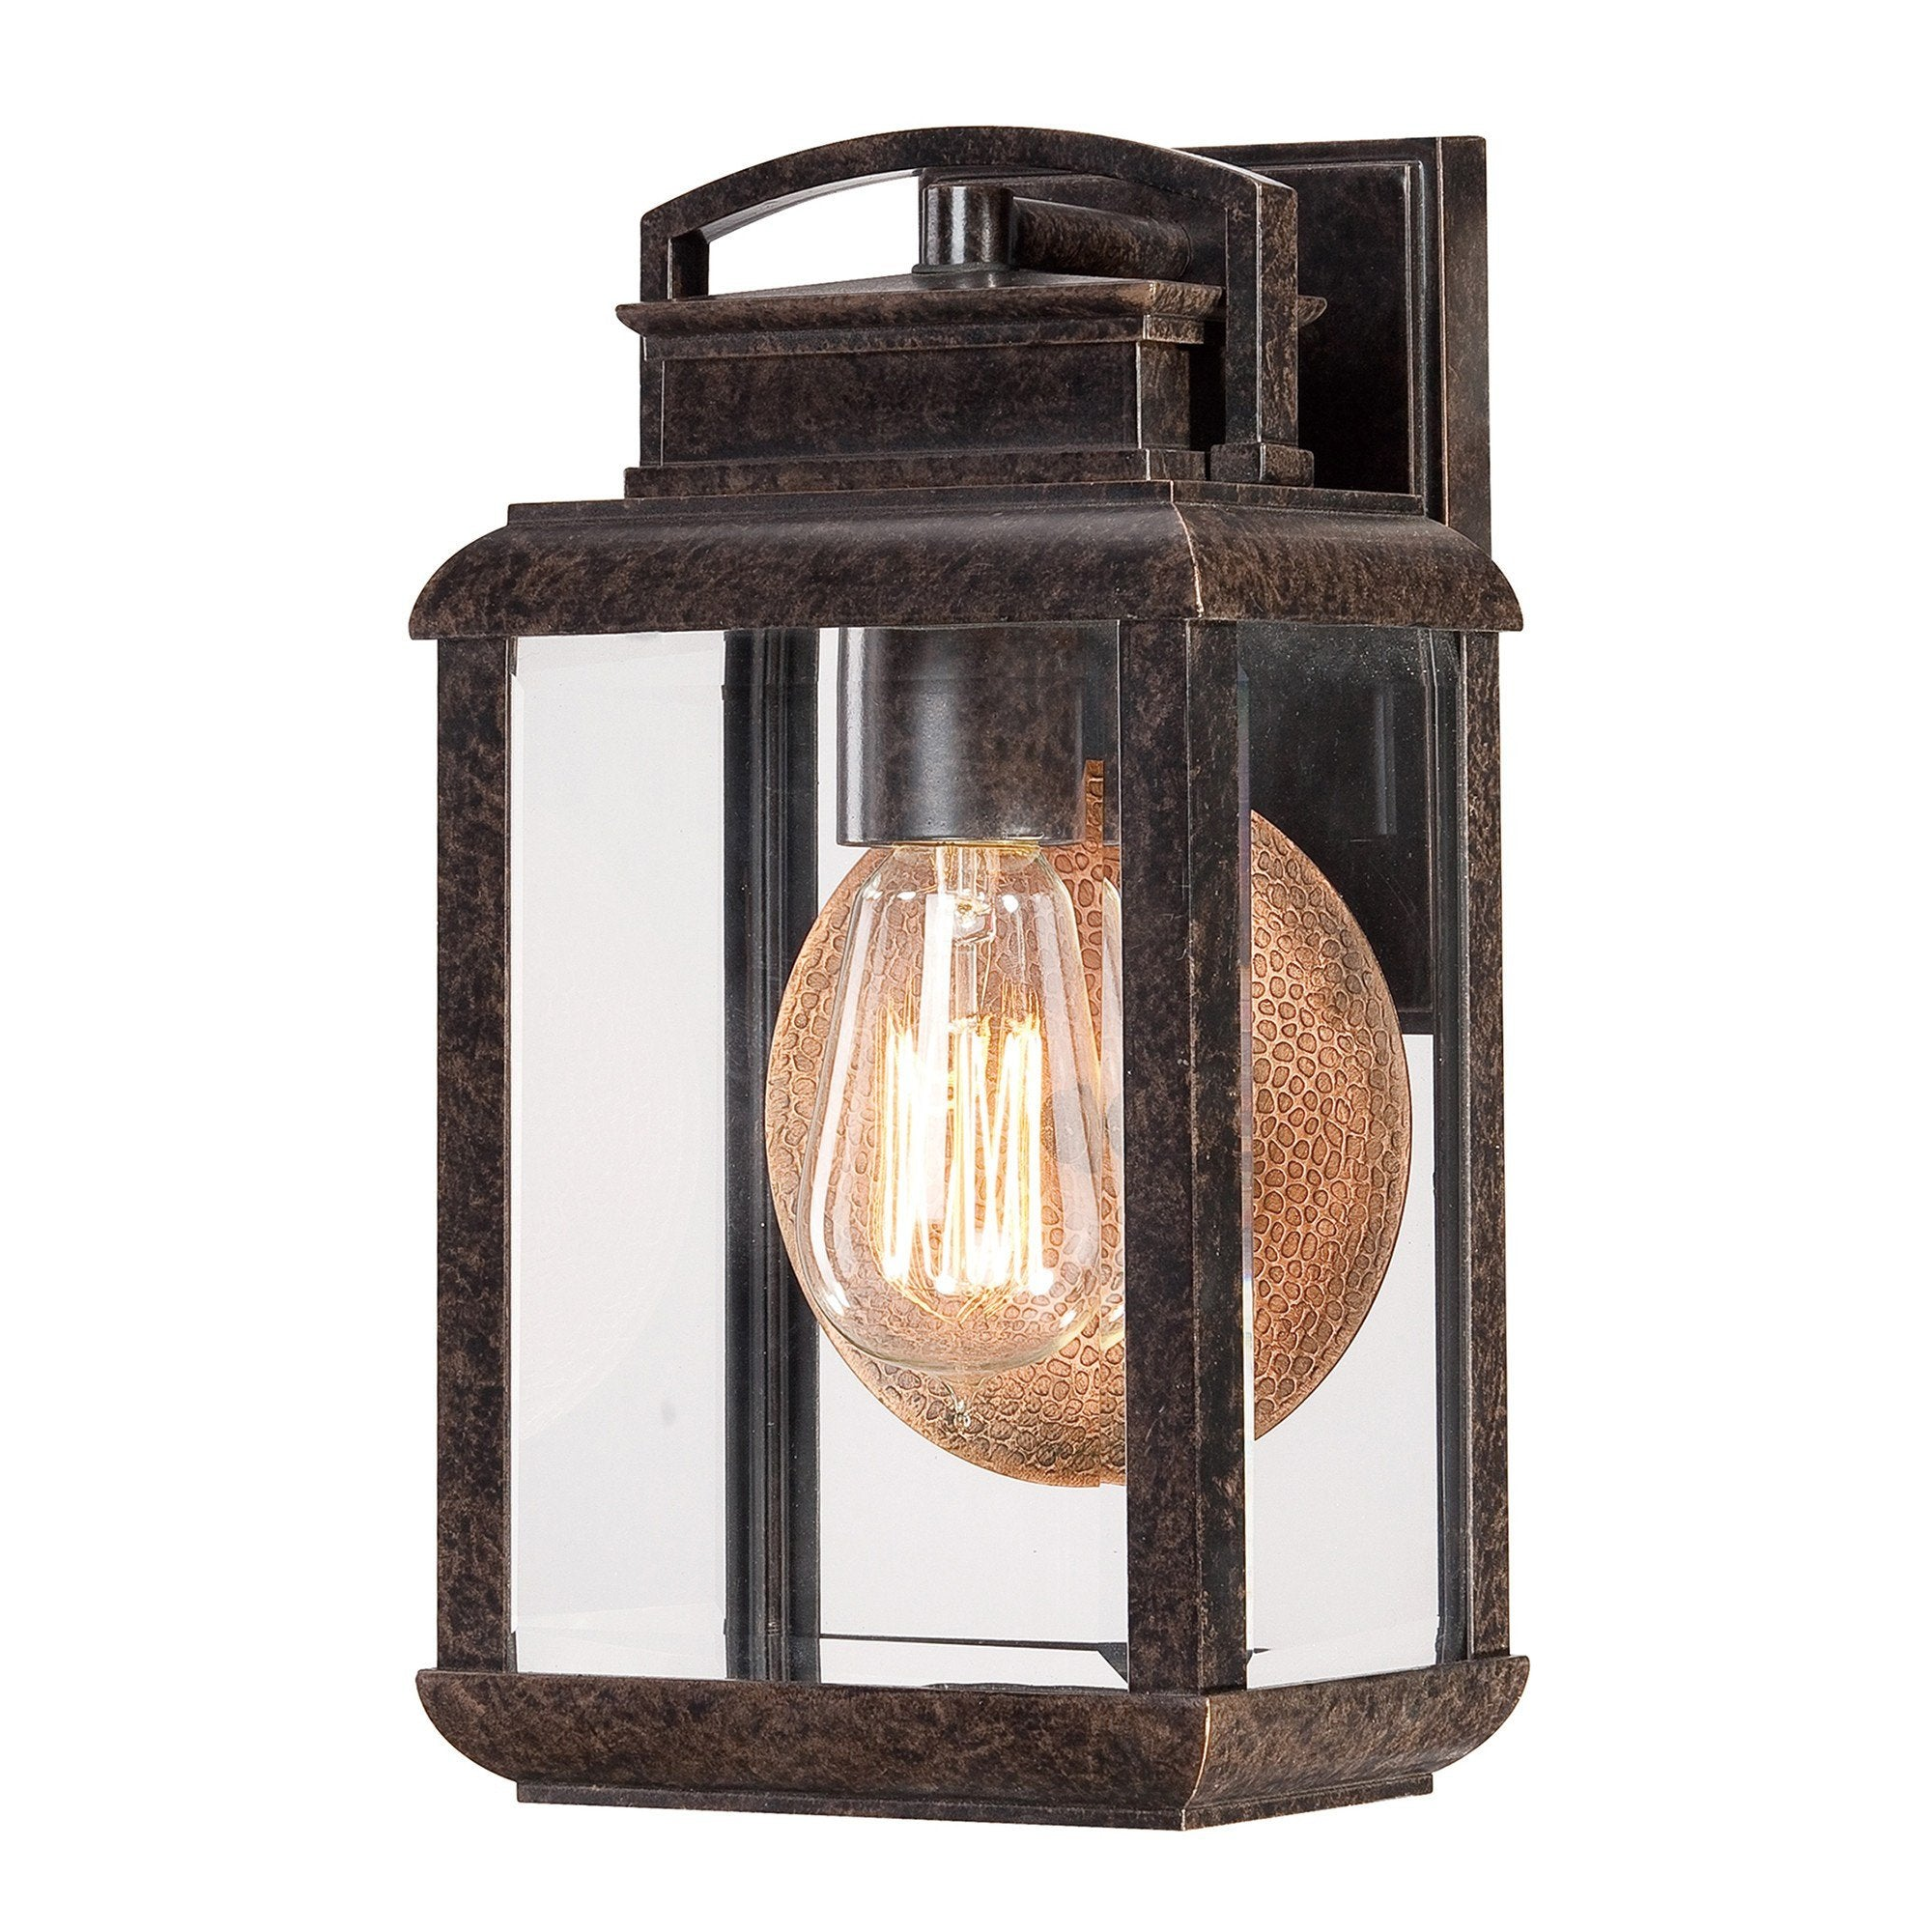 Quoizel Byron Small Wall Lantern - London Lighting - 1